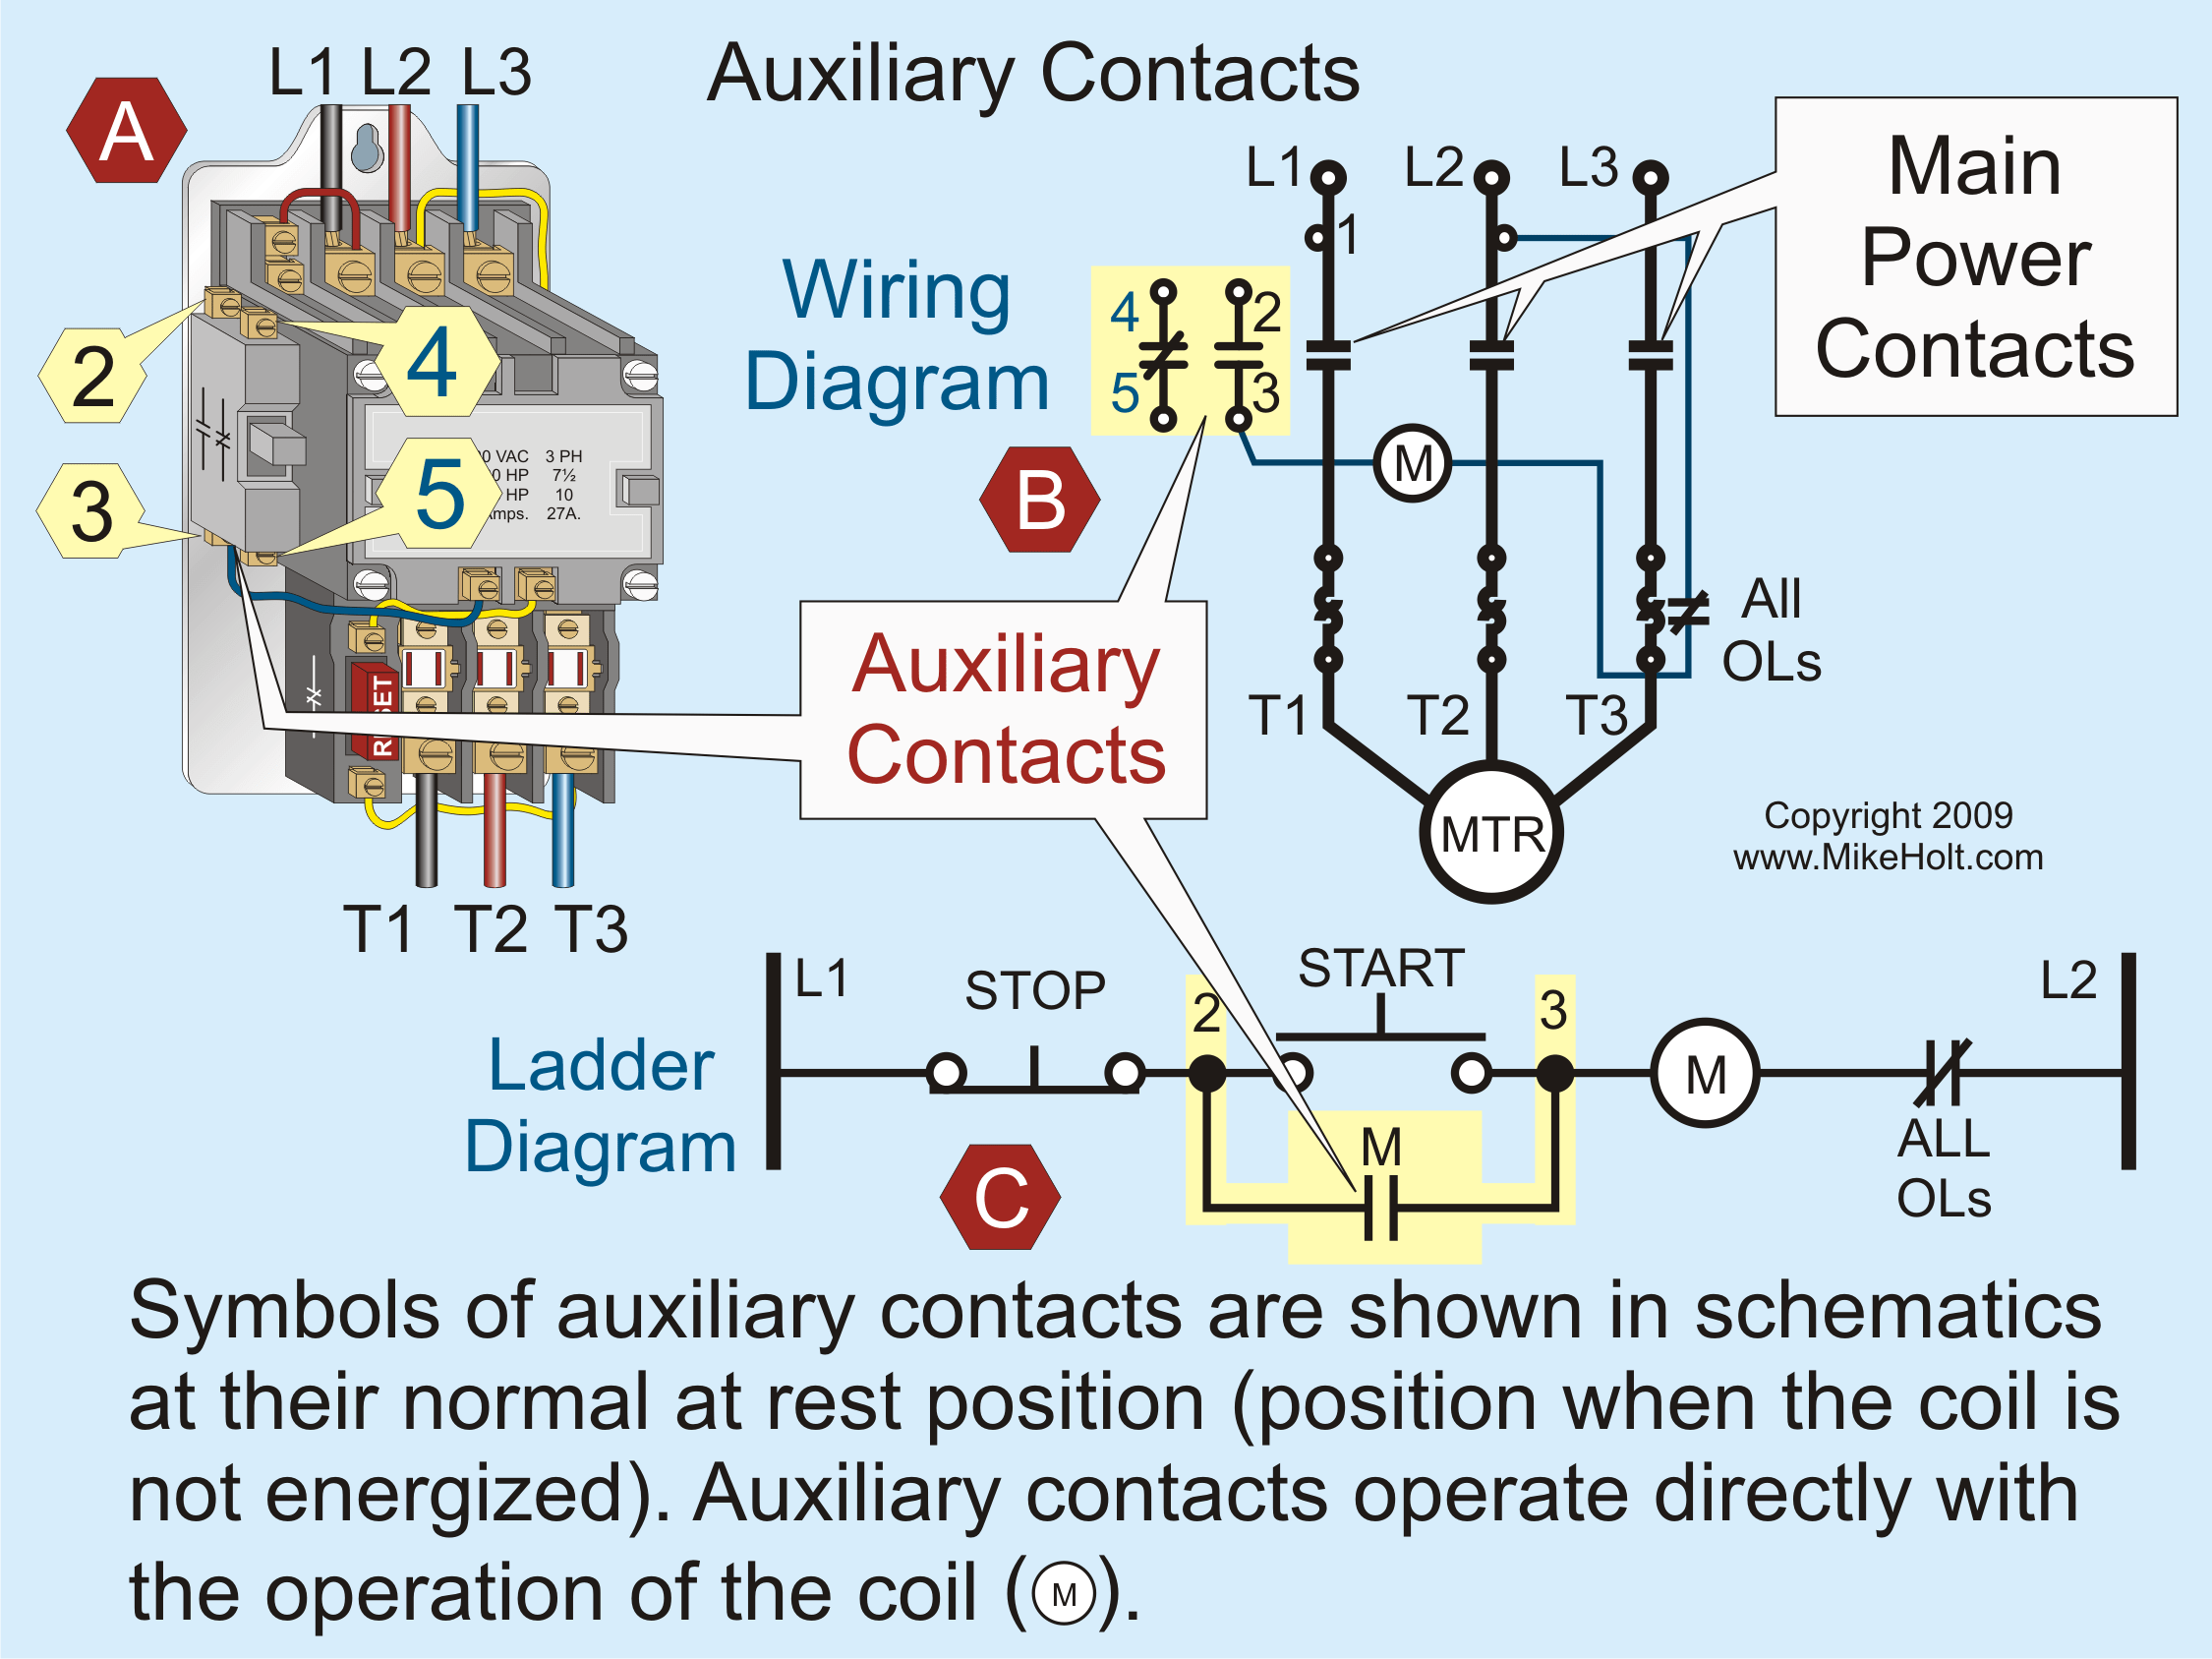 Basic Contactor Wiring Diagram : Lighting contactor wiring diagram